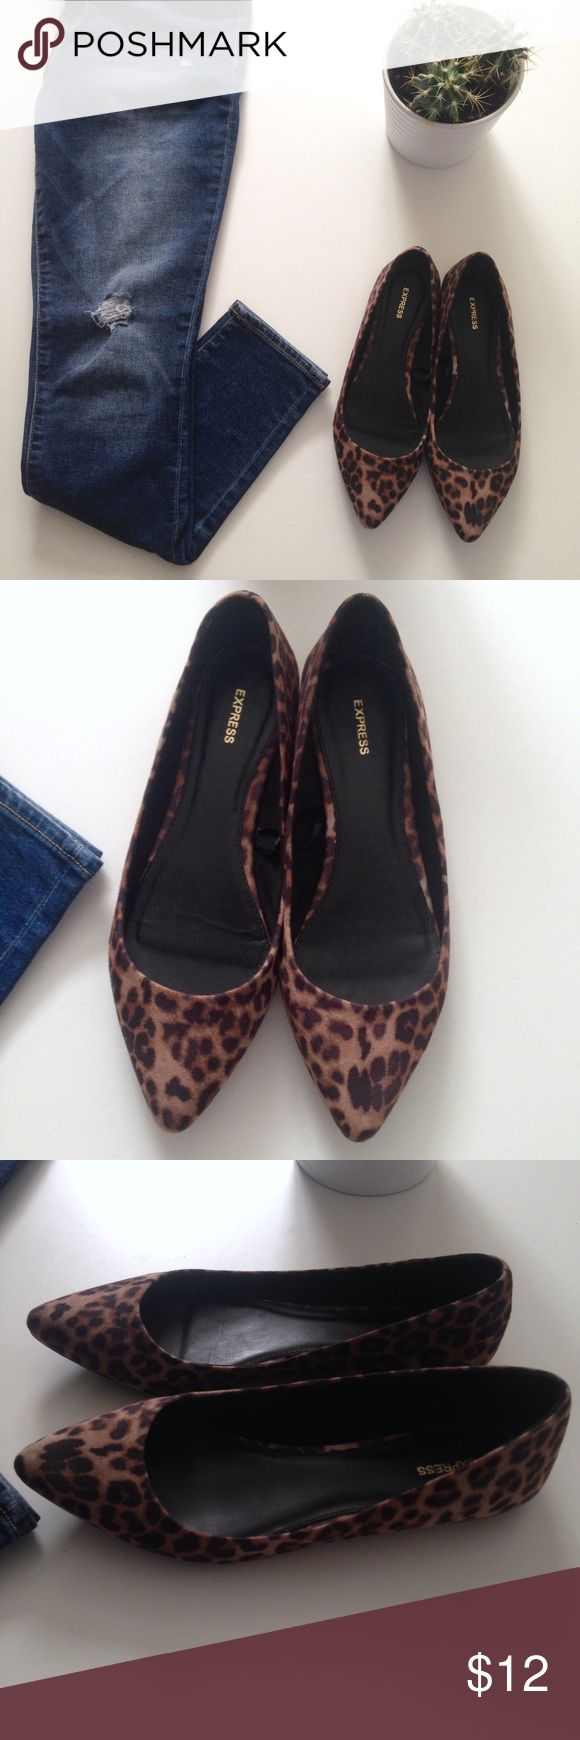 Leopard ballet flats Worn just once. In excellent condition. They appear slightly greyer than in the photos. Super cute. Selling because they're a little big for me. Shoes Flats & Loafers